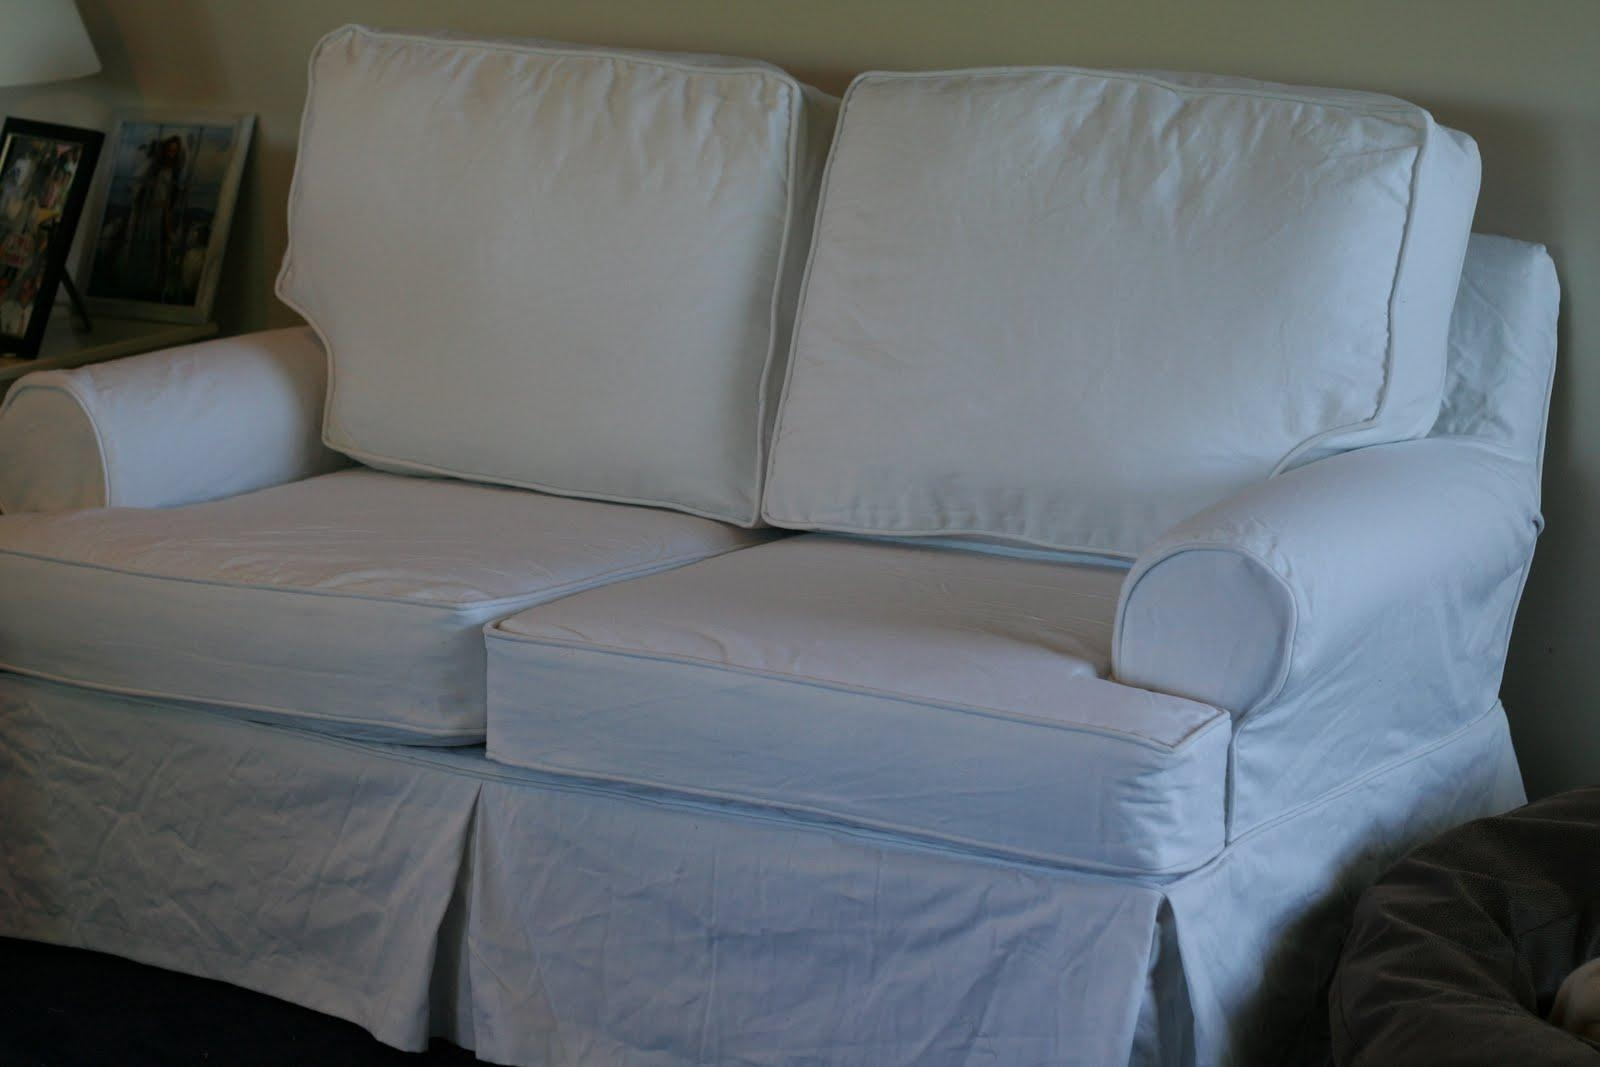 White Denim Slipcover Couches | Tehranmix Decoration With Regard To Denim Loveseats (View 10 of 20)